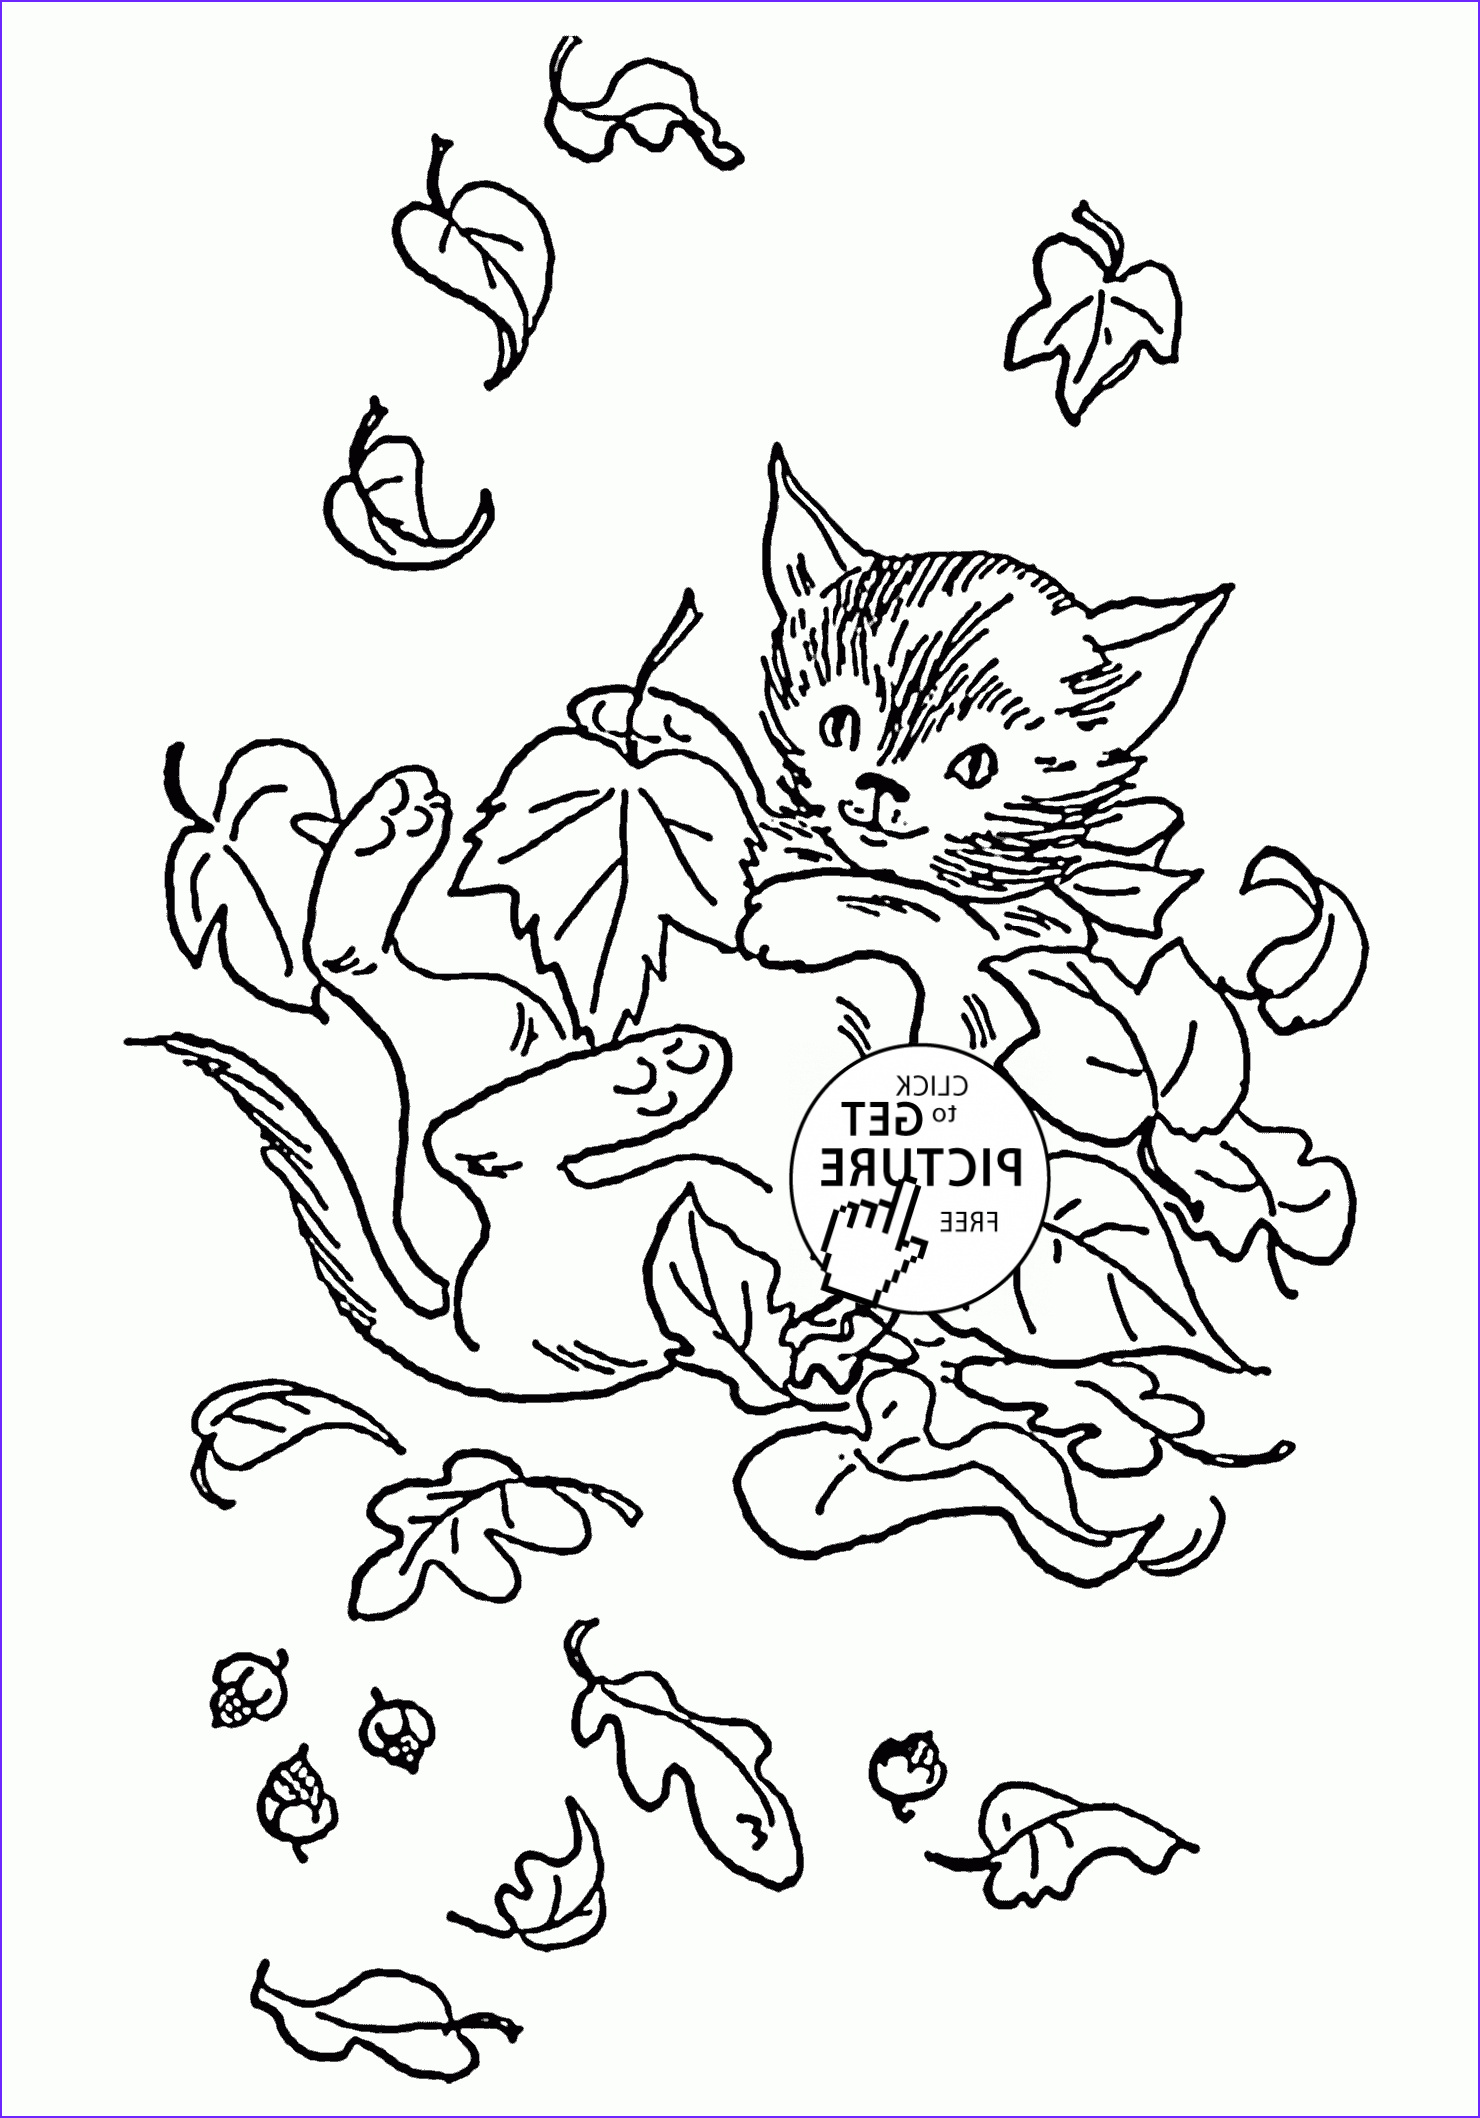 september 11th coloring pages sketch templates